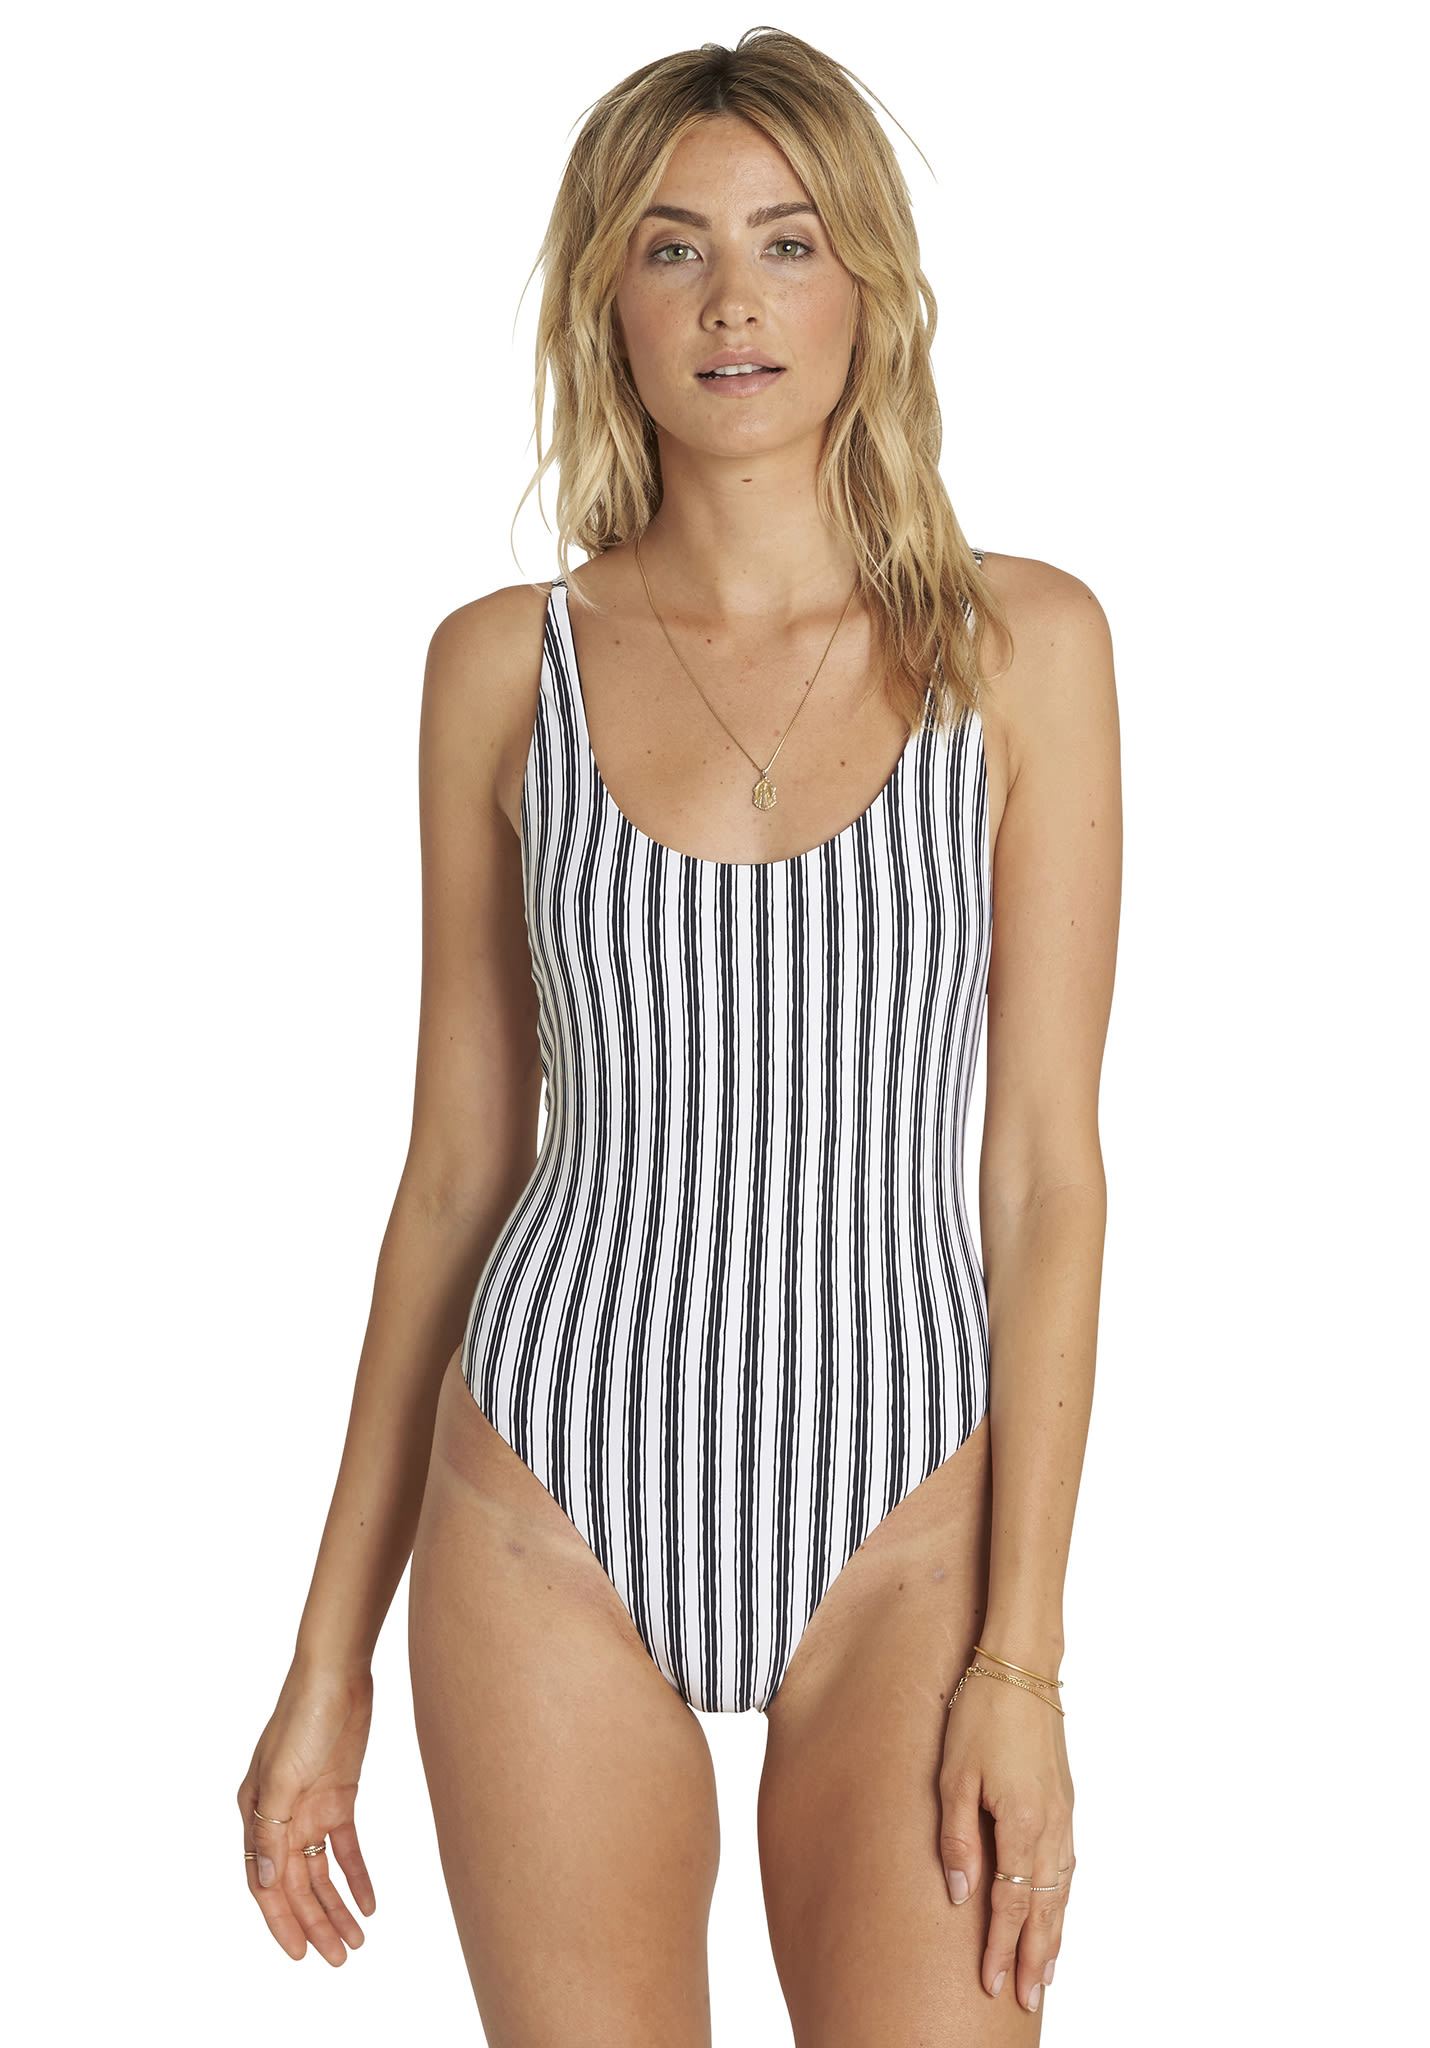 8144399b0ec BILLABONG My Line - One-piece Swimsuit for Women - Multicolor - Planet  Sports